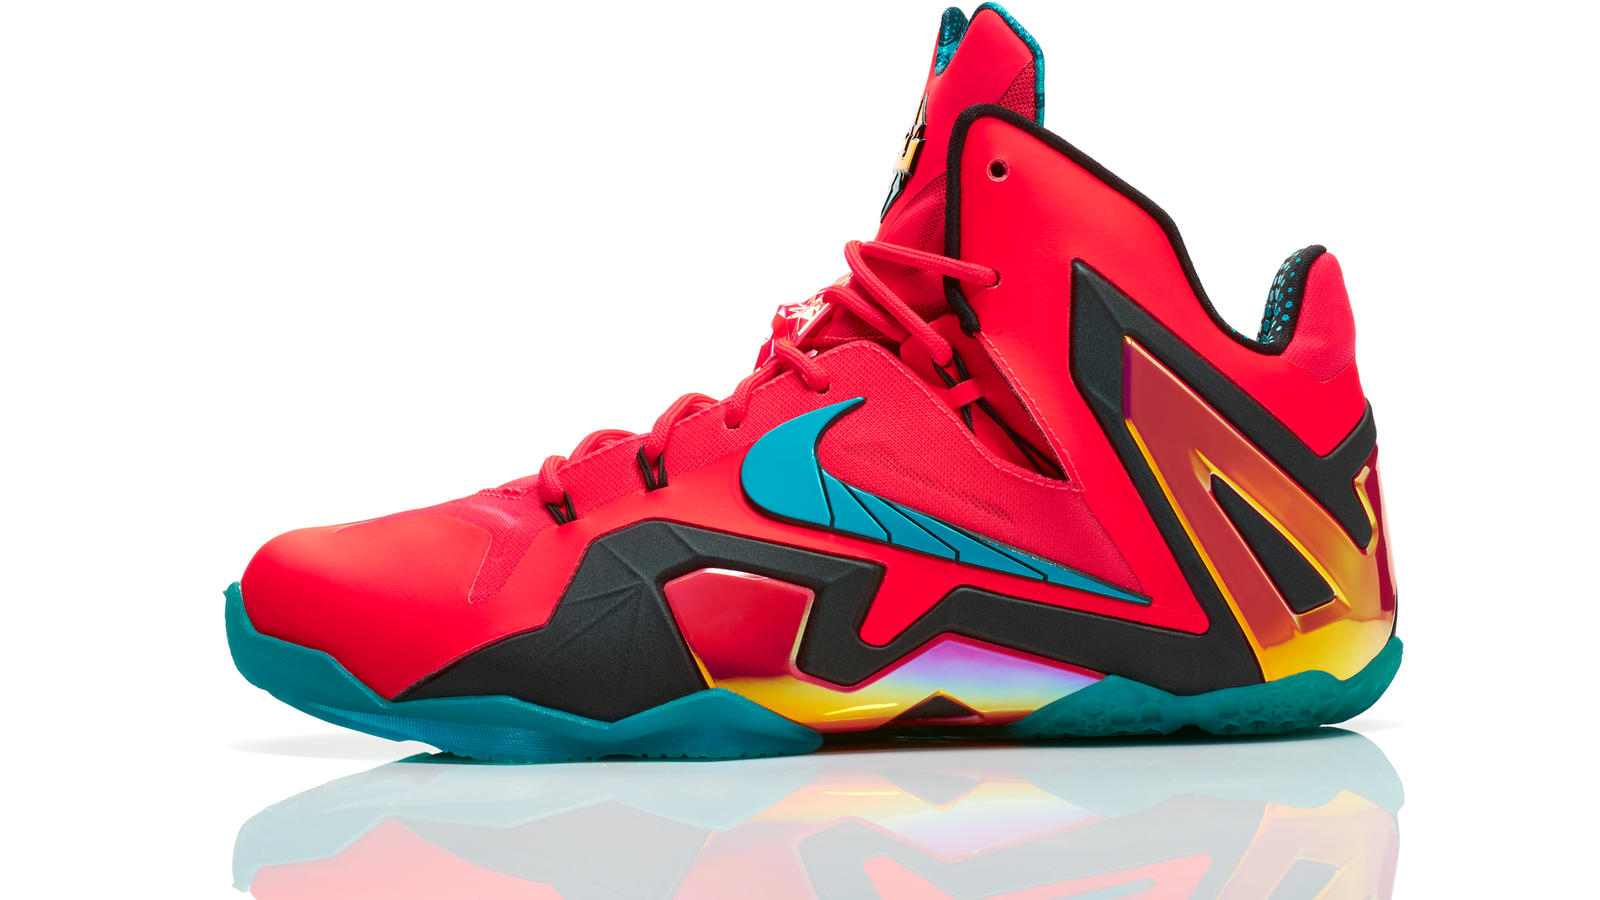 lebron11_unleashed_600_profile_16838_fb